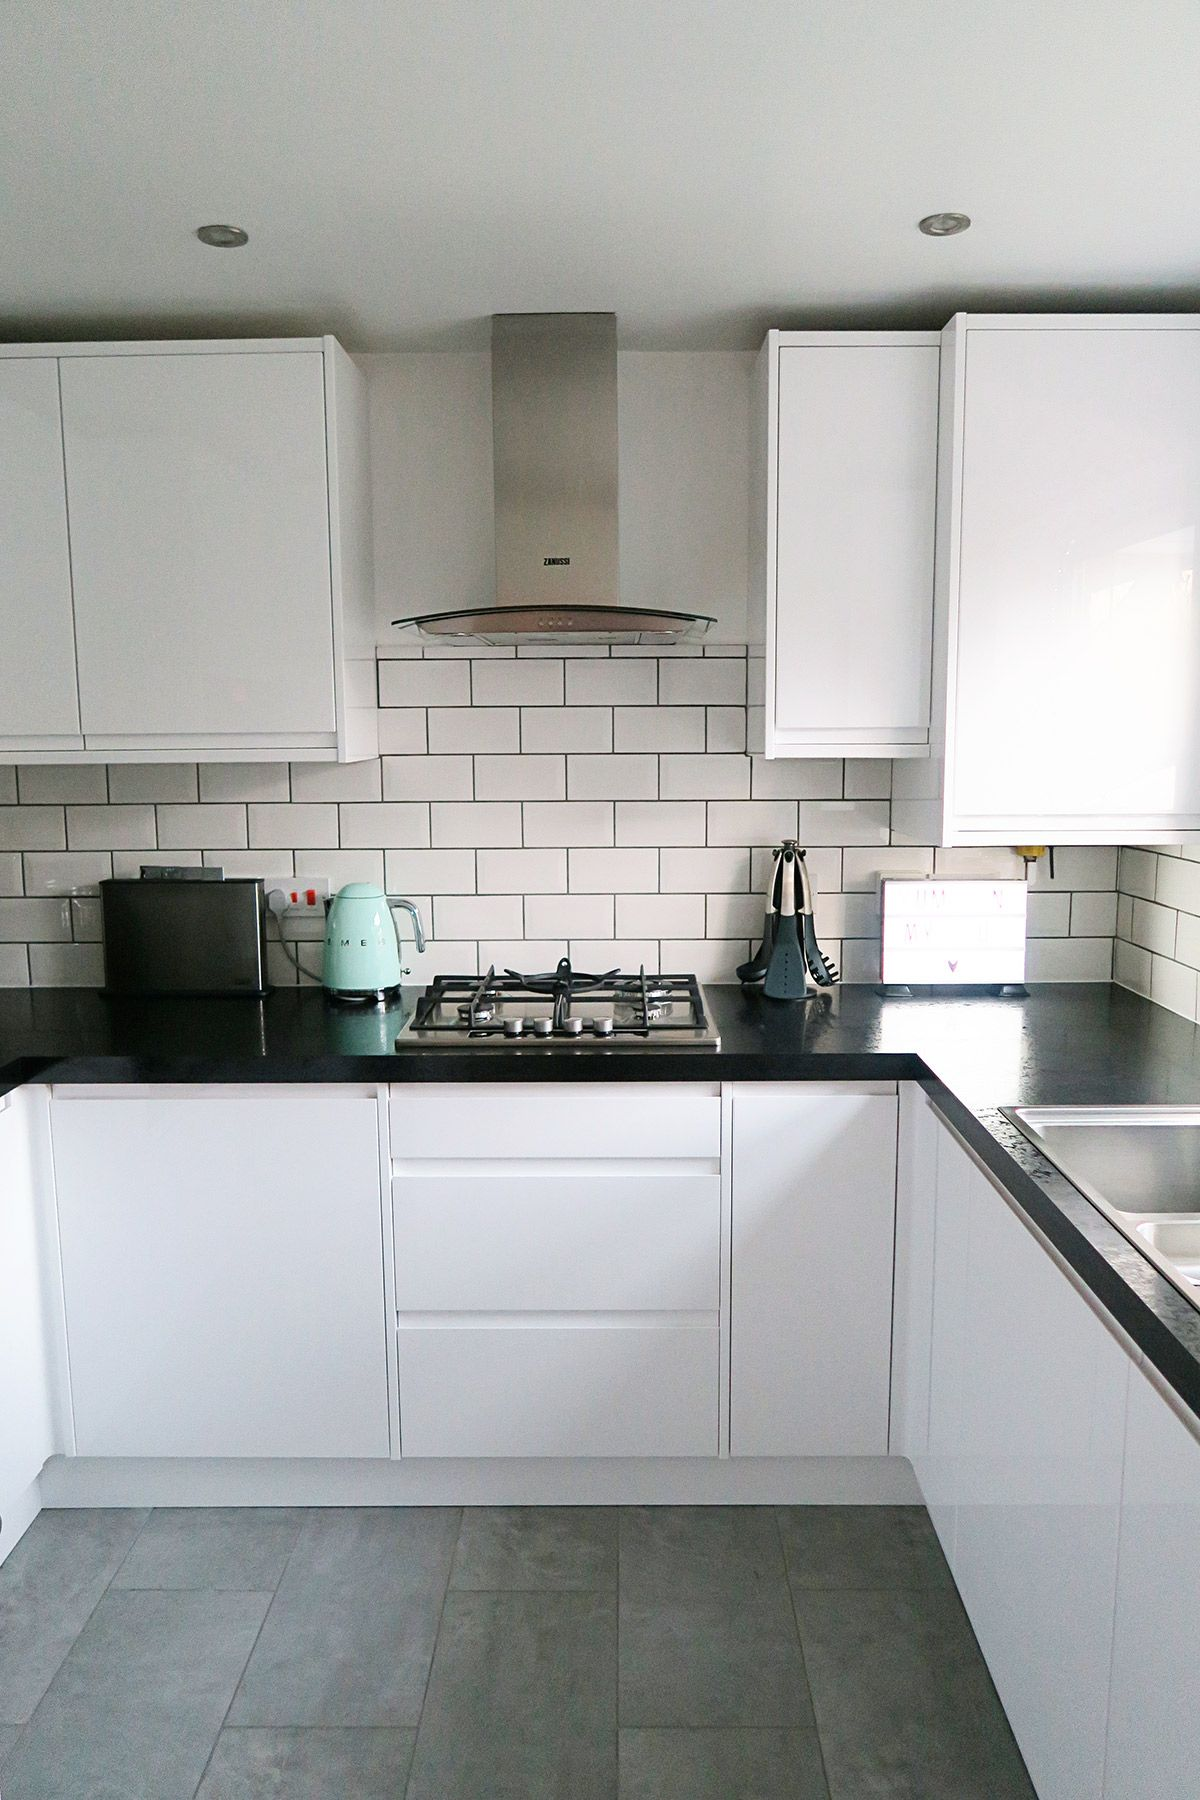 Our new kitchen which we designed with Wickes. I love the